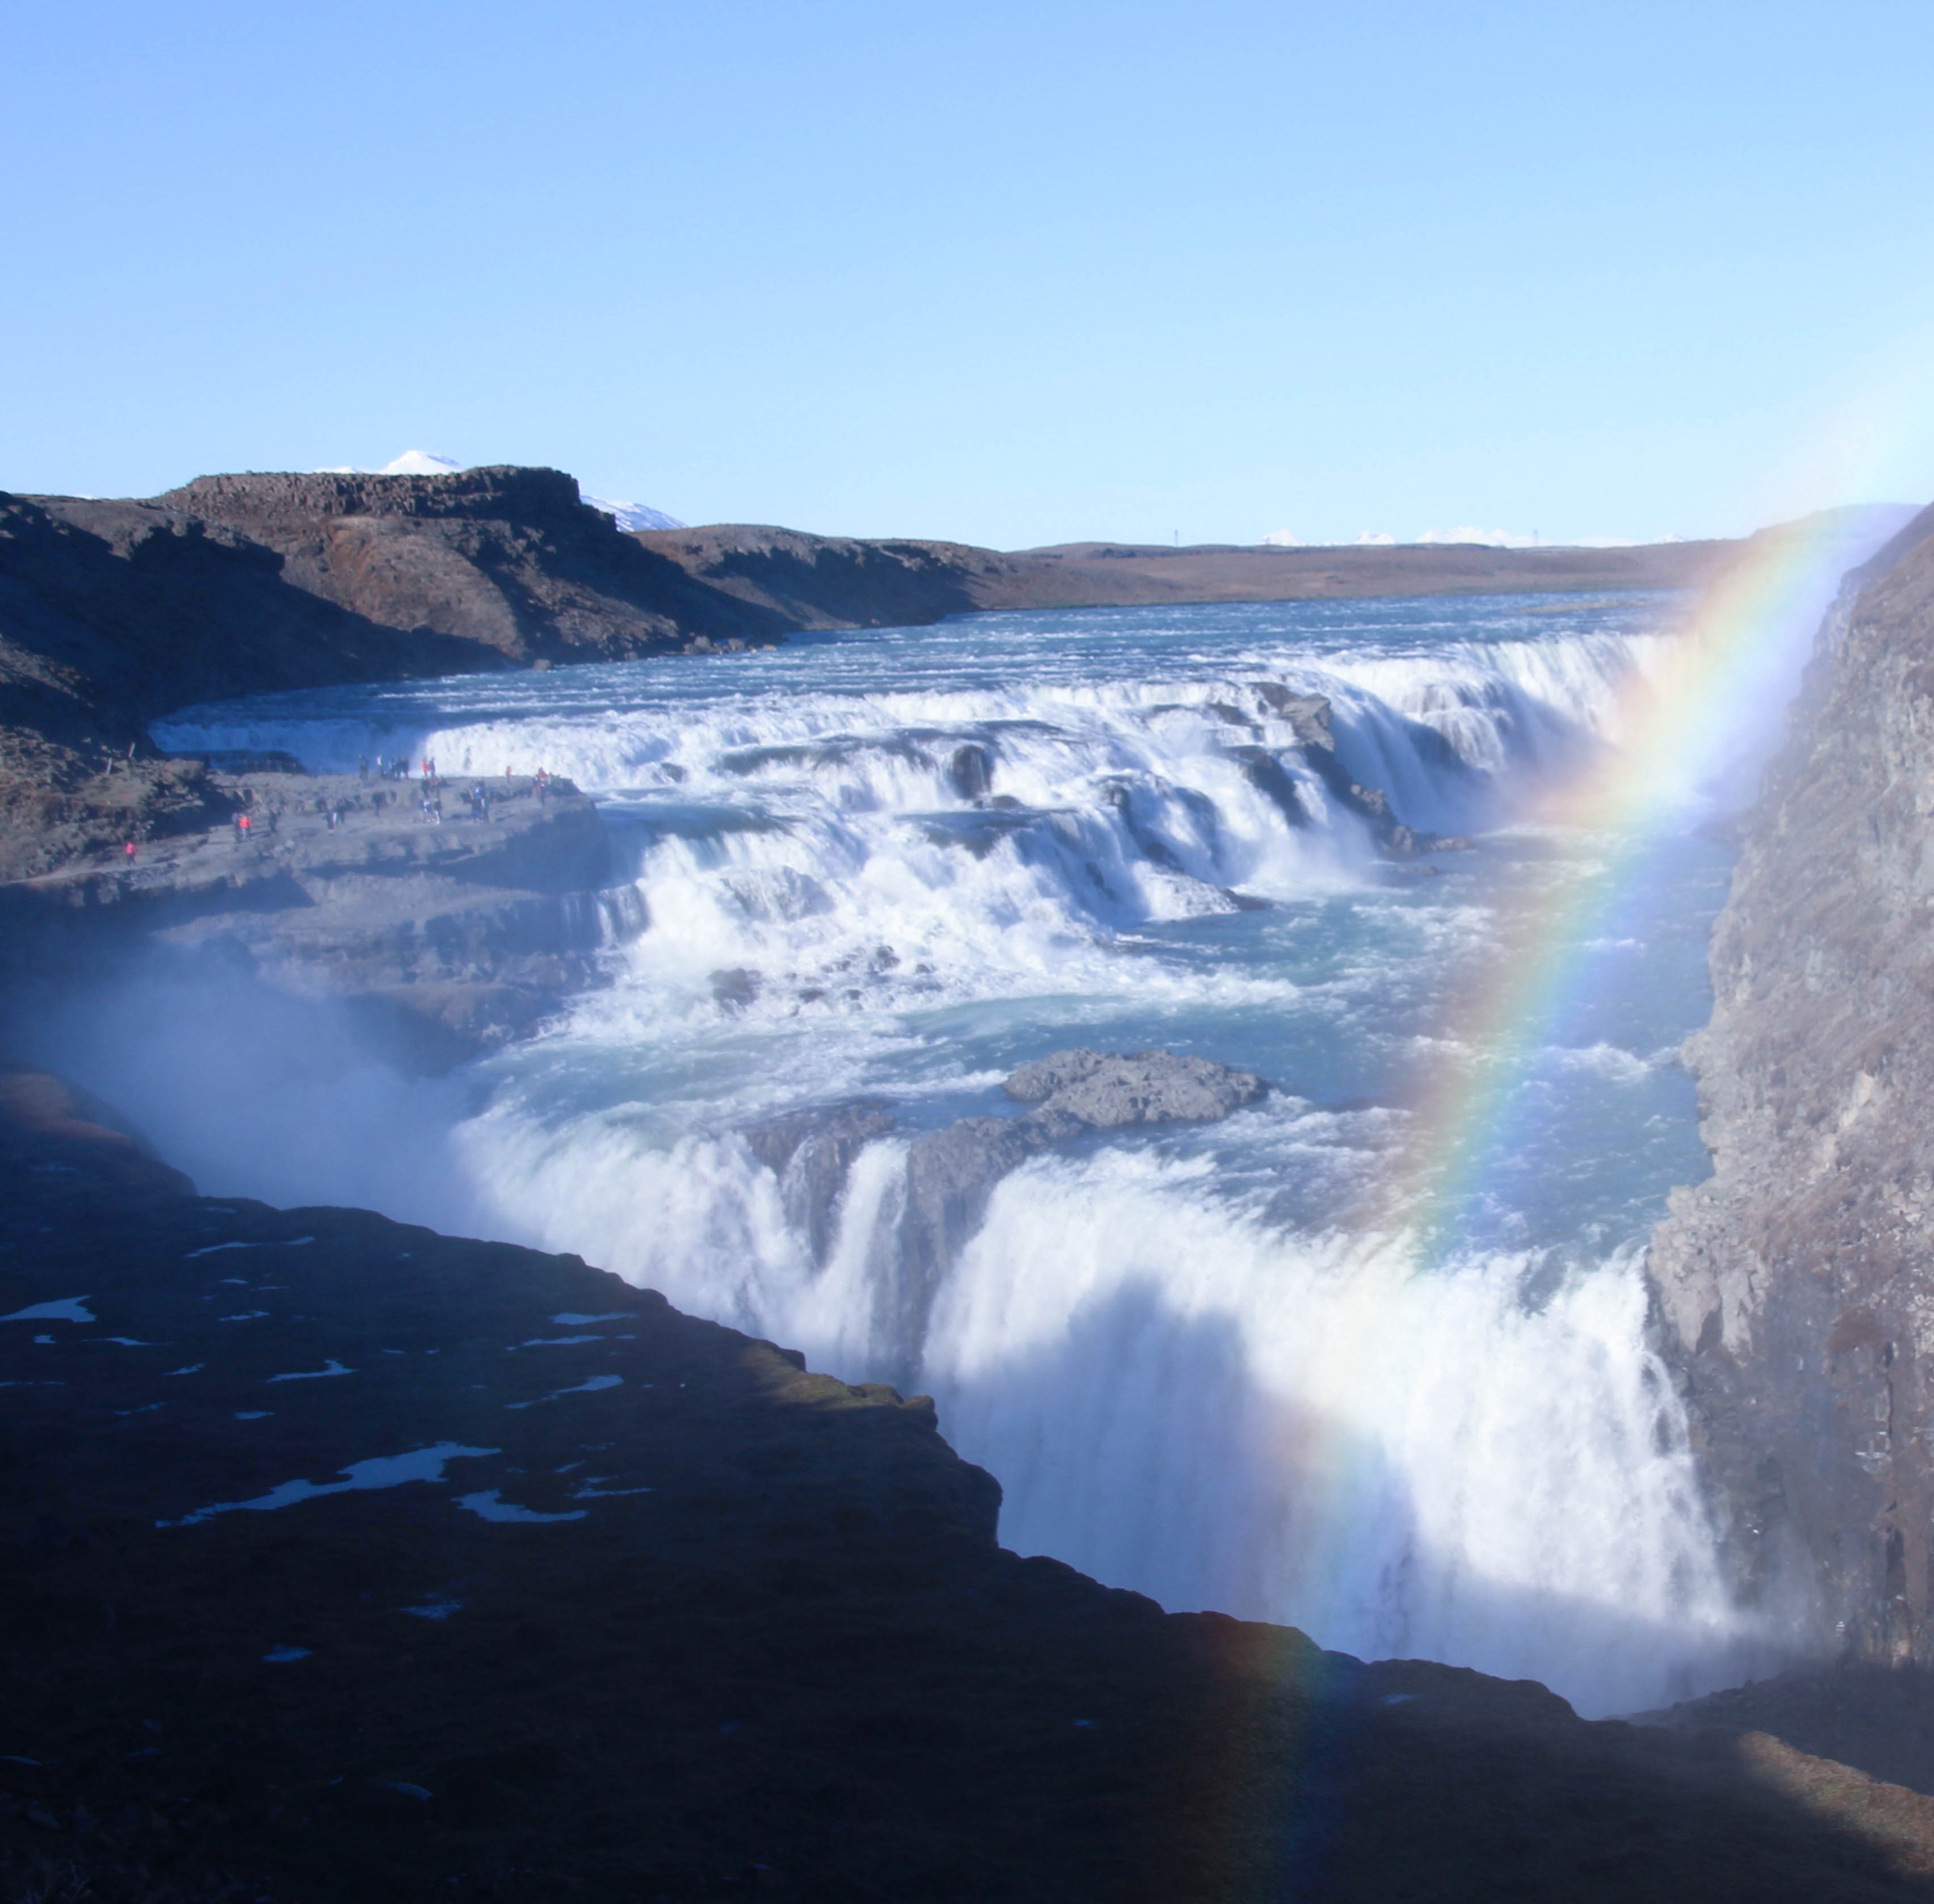 evening view of Gullfoss